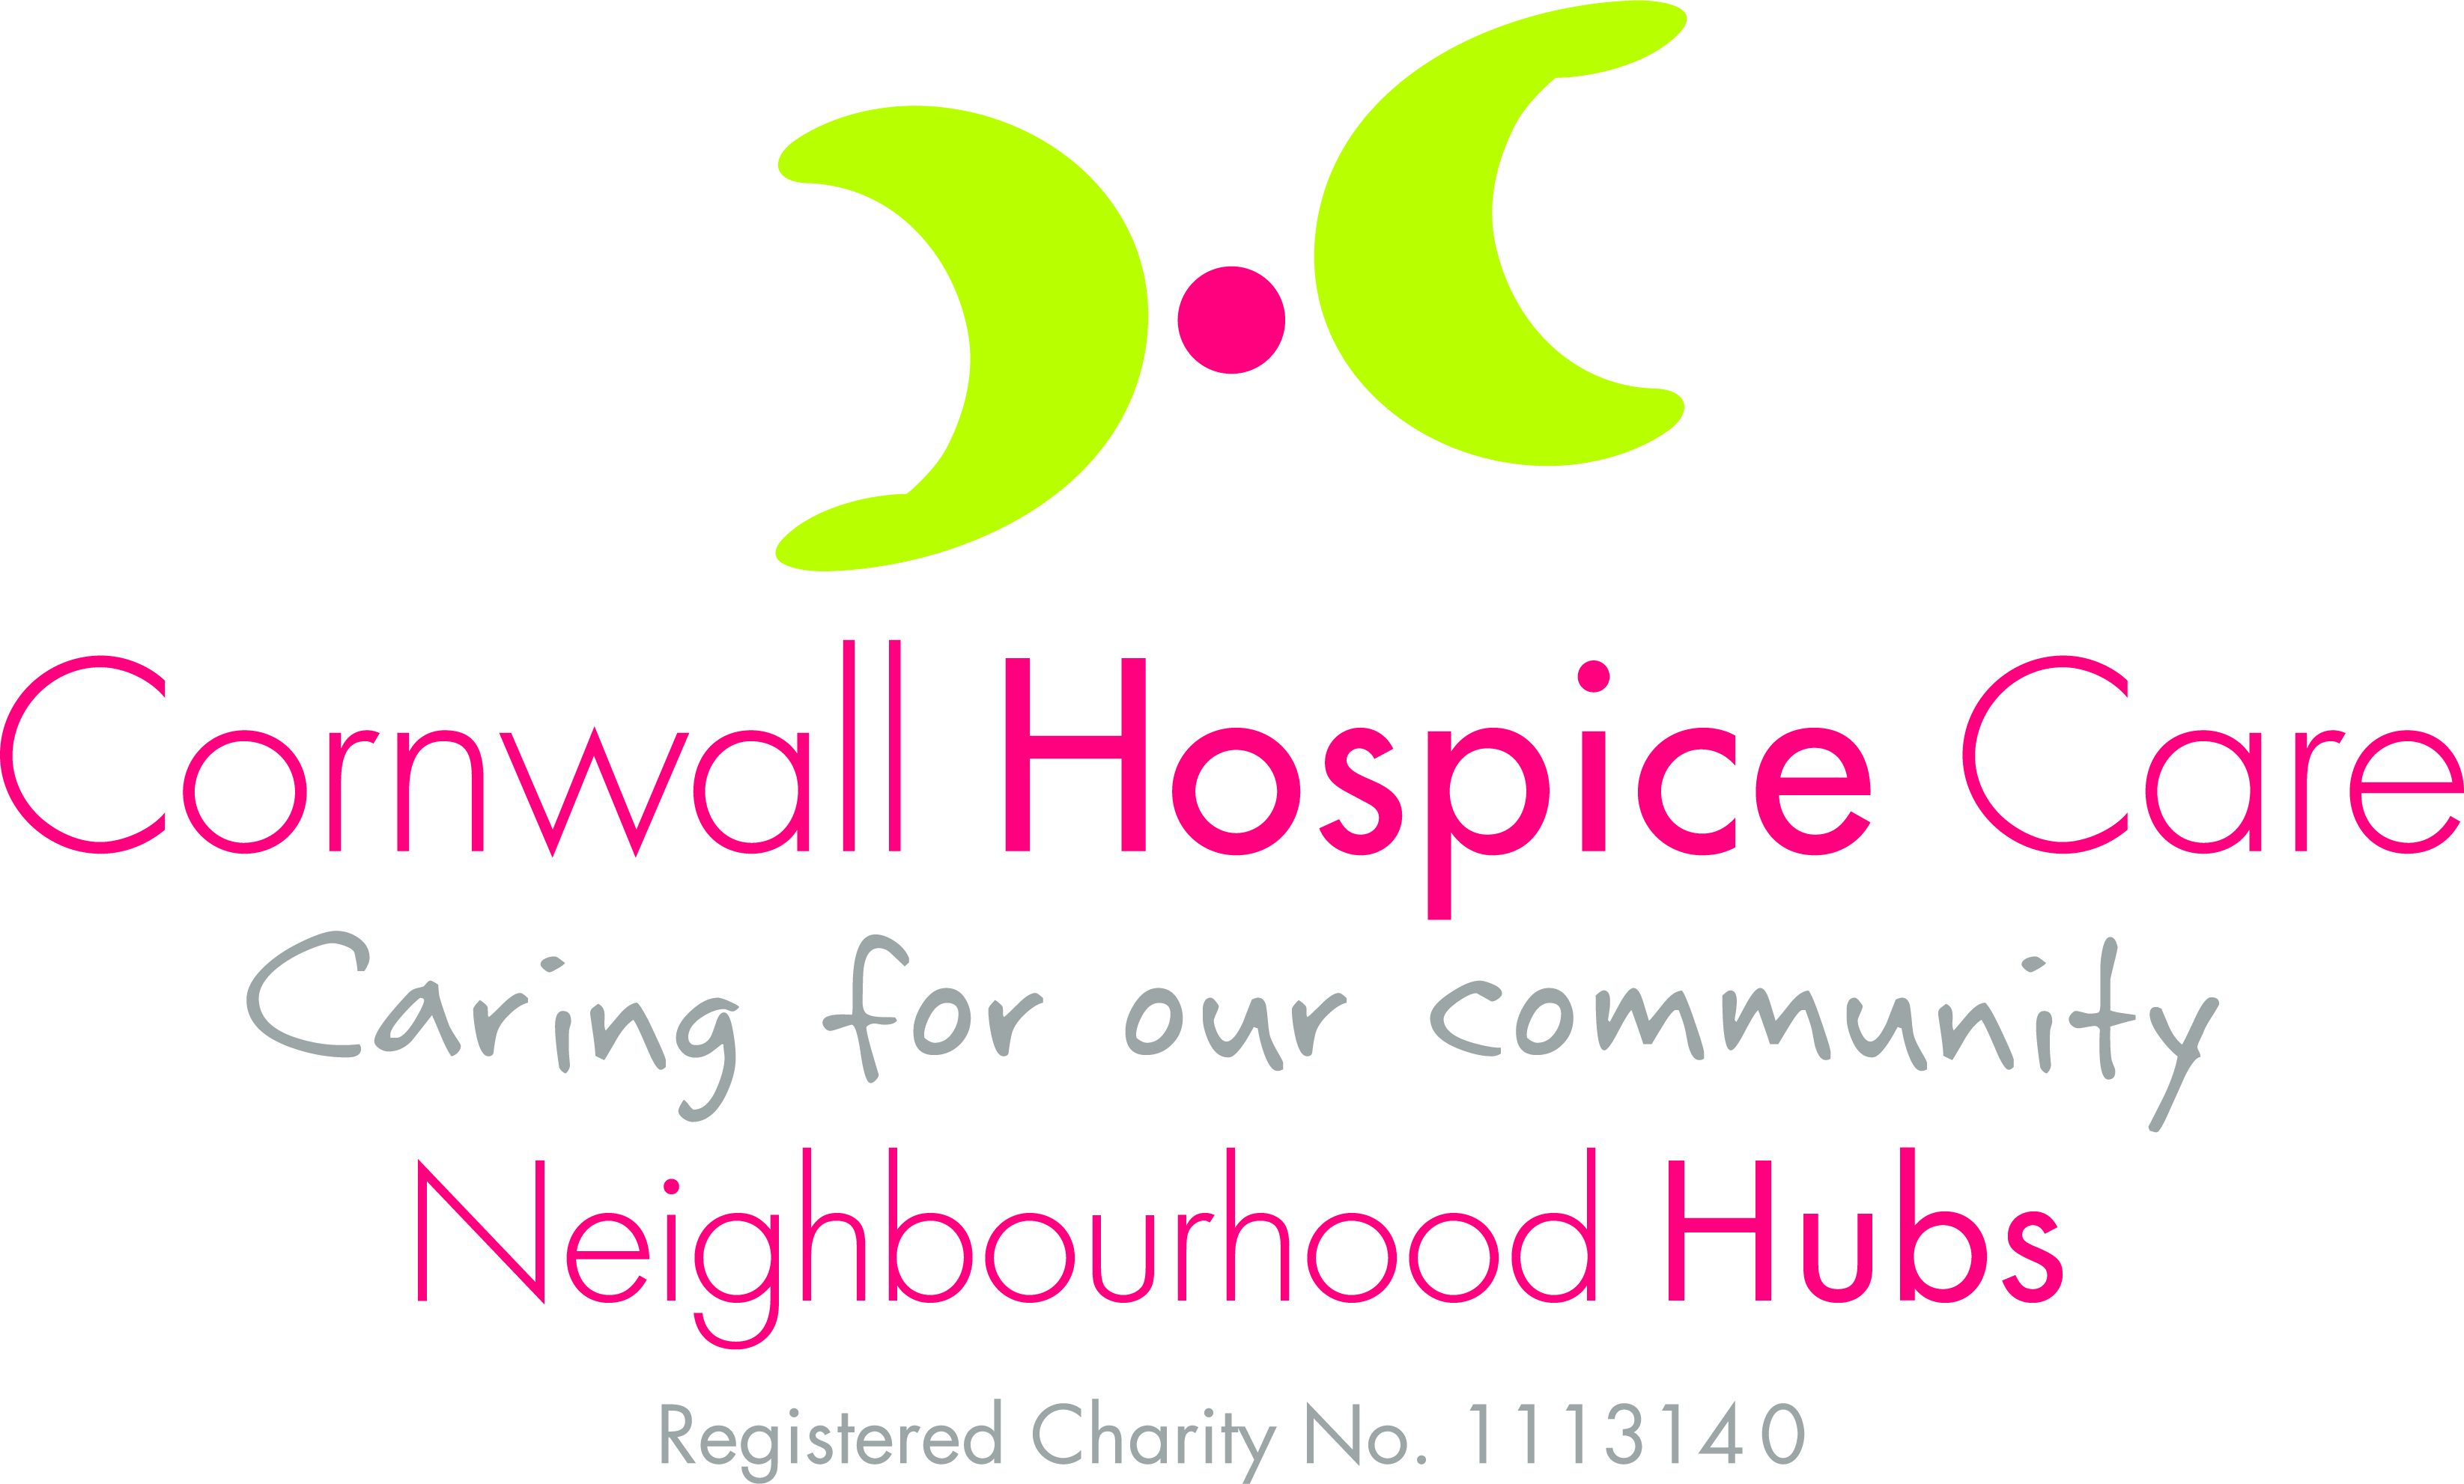 cornwall hospice care logo